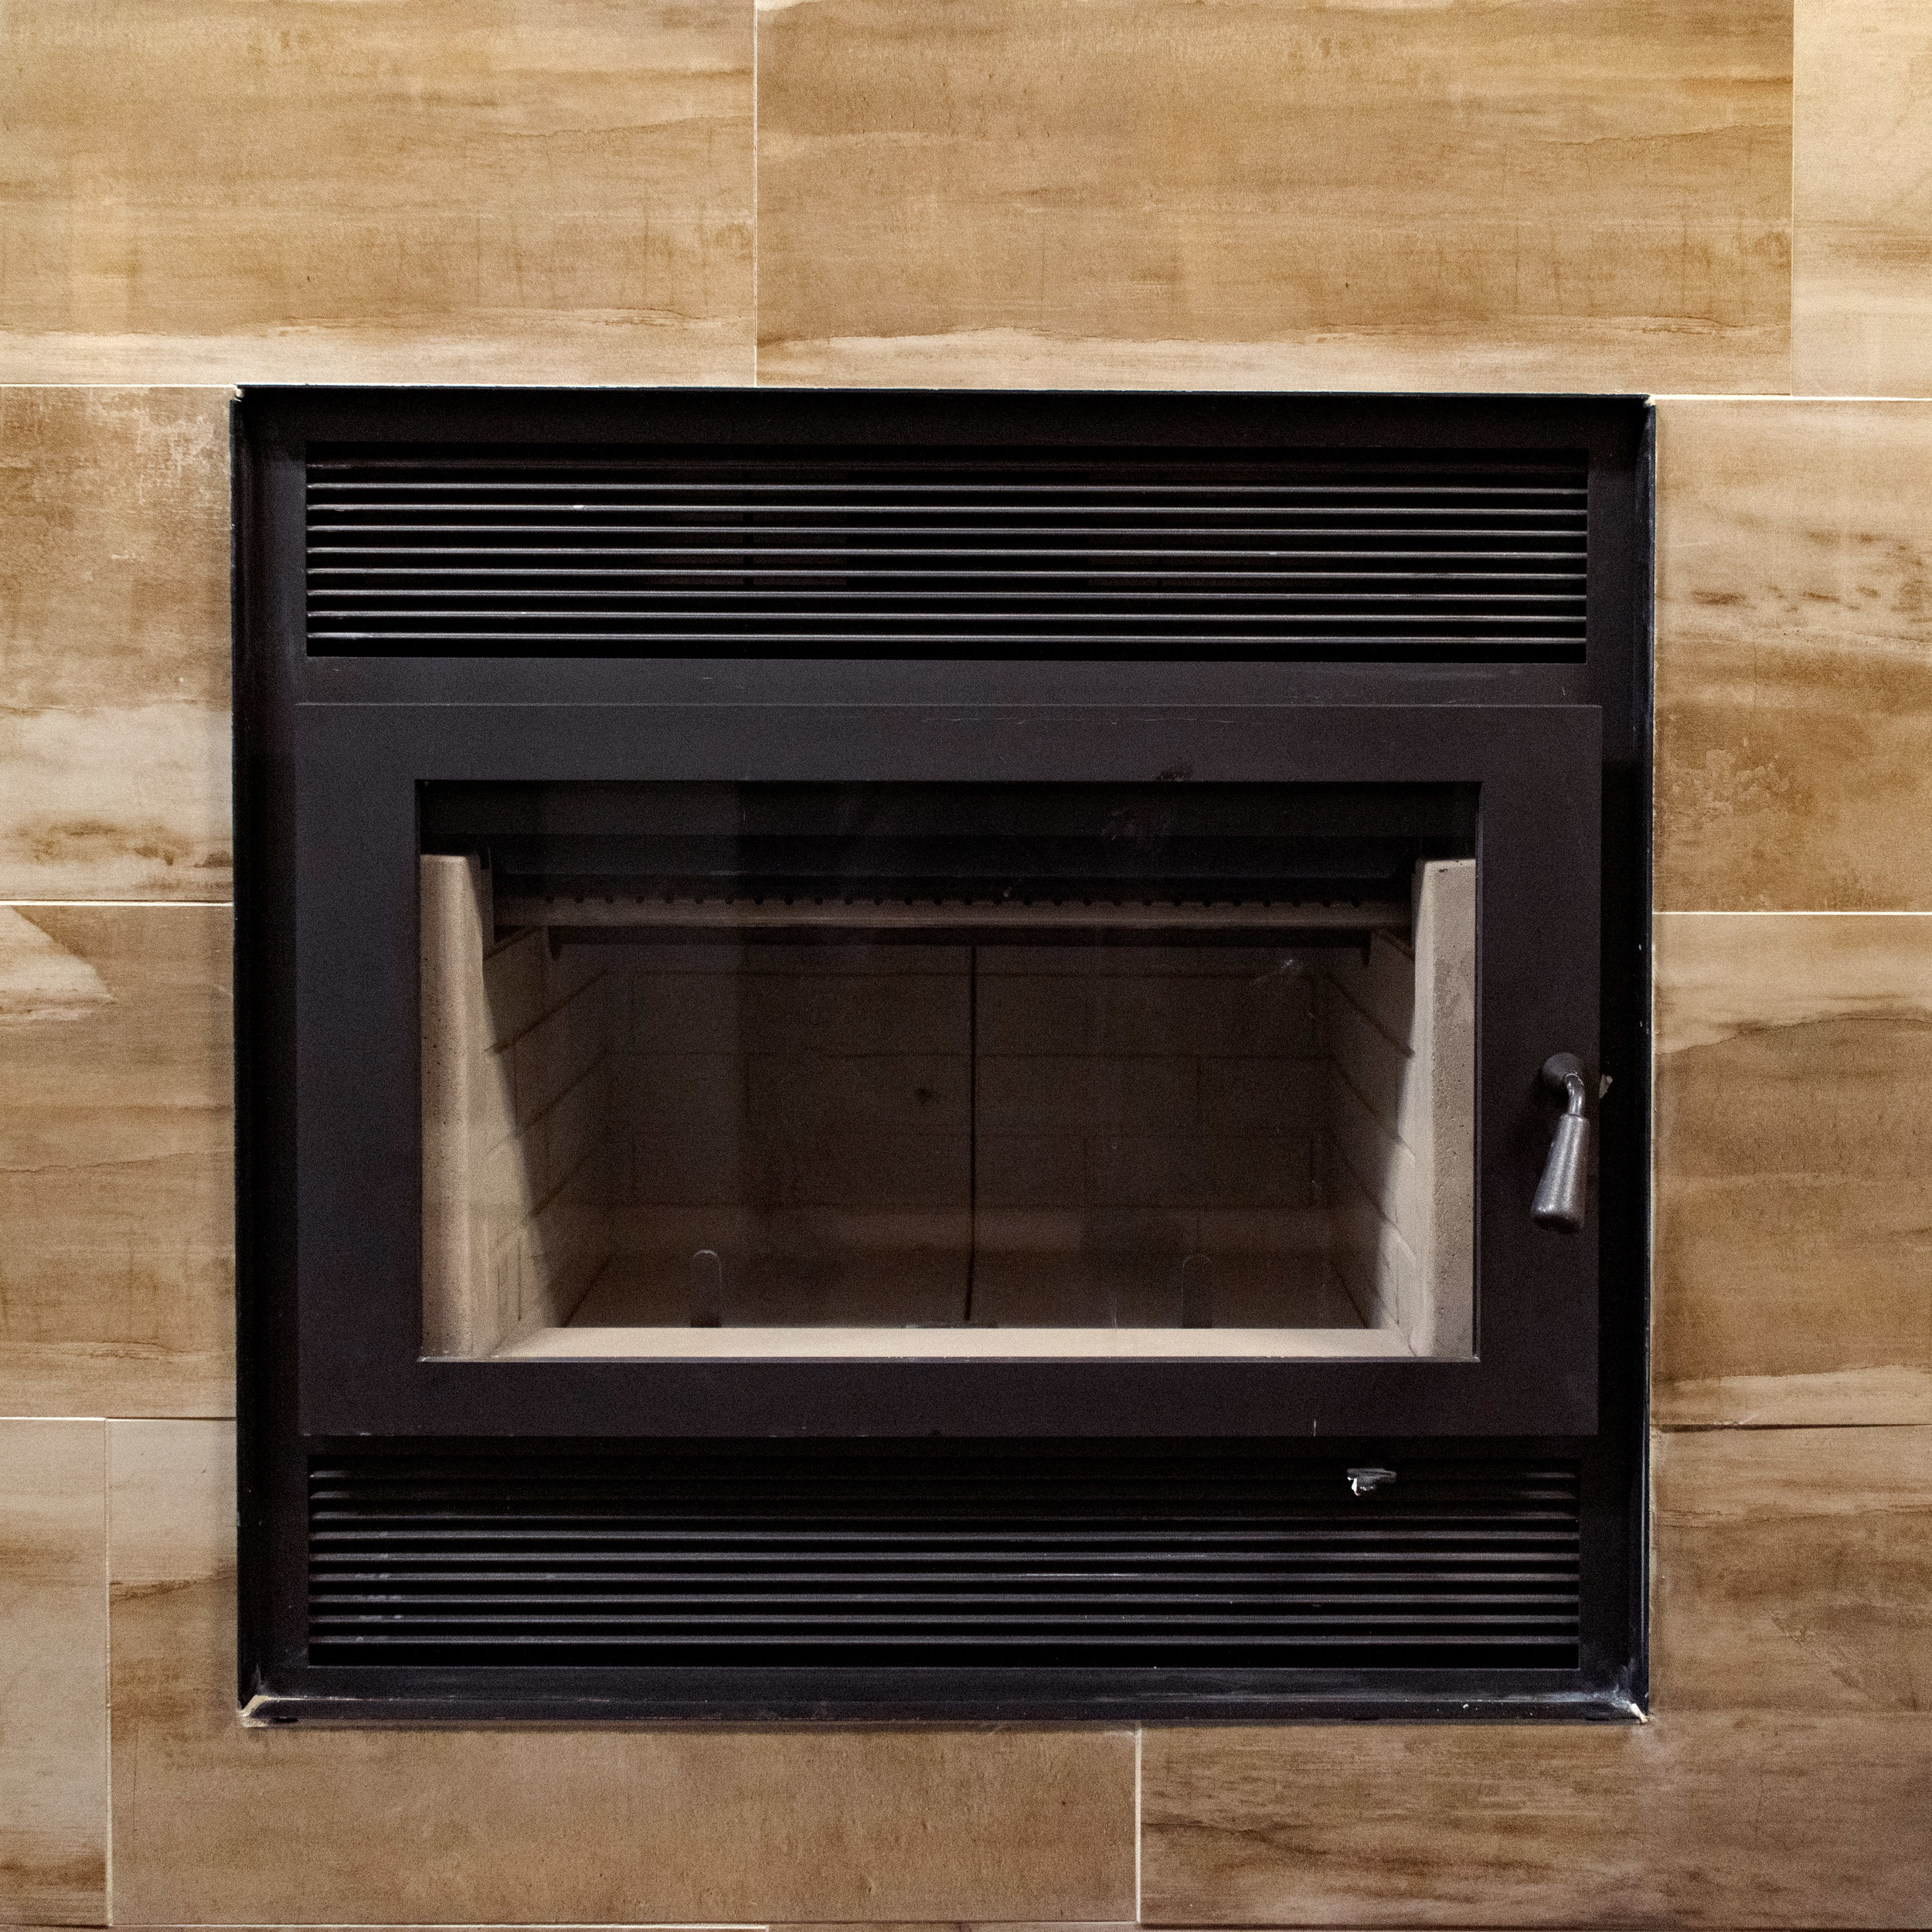 "RSF Focus 320 - ‧ Wood Fireplace - 50,000 BTU‧ 2.6 cu ft Firebox‧ 22"" Logs‧ Steel door‧ Available as a See-thru Model‧ Optional heat-circulating blower‧ Optional CleanFace design"